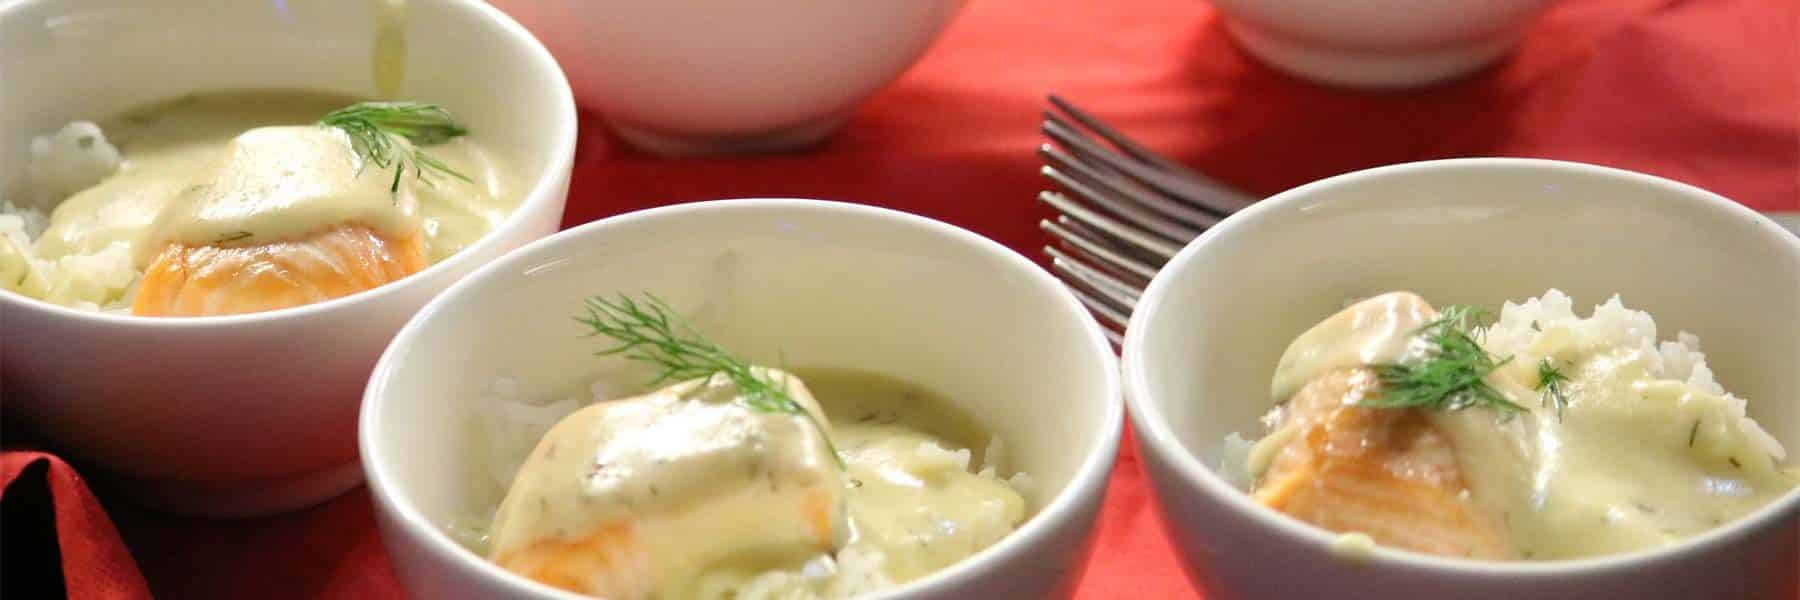 Roasted Salmon with Dill & Lemon Sauce